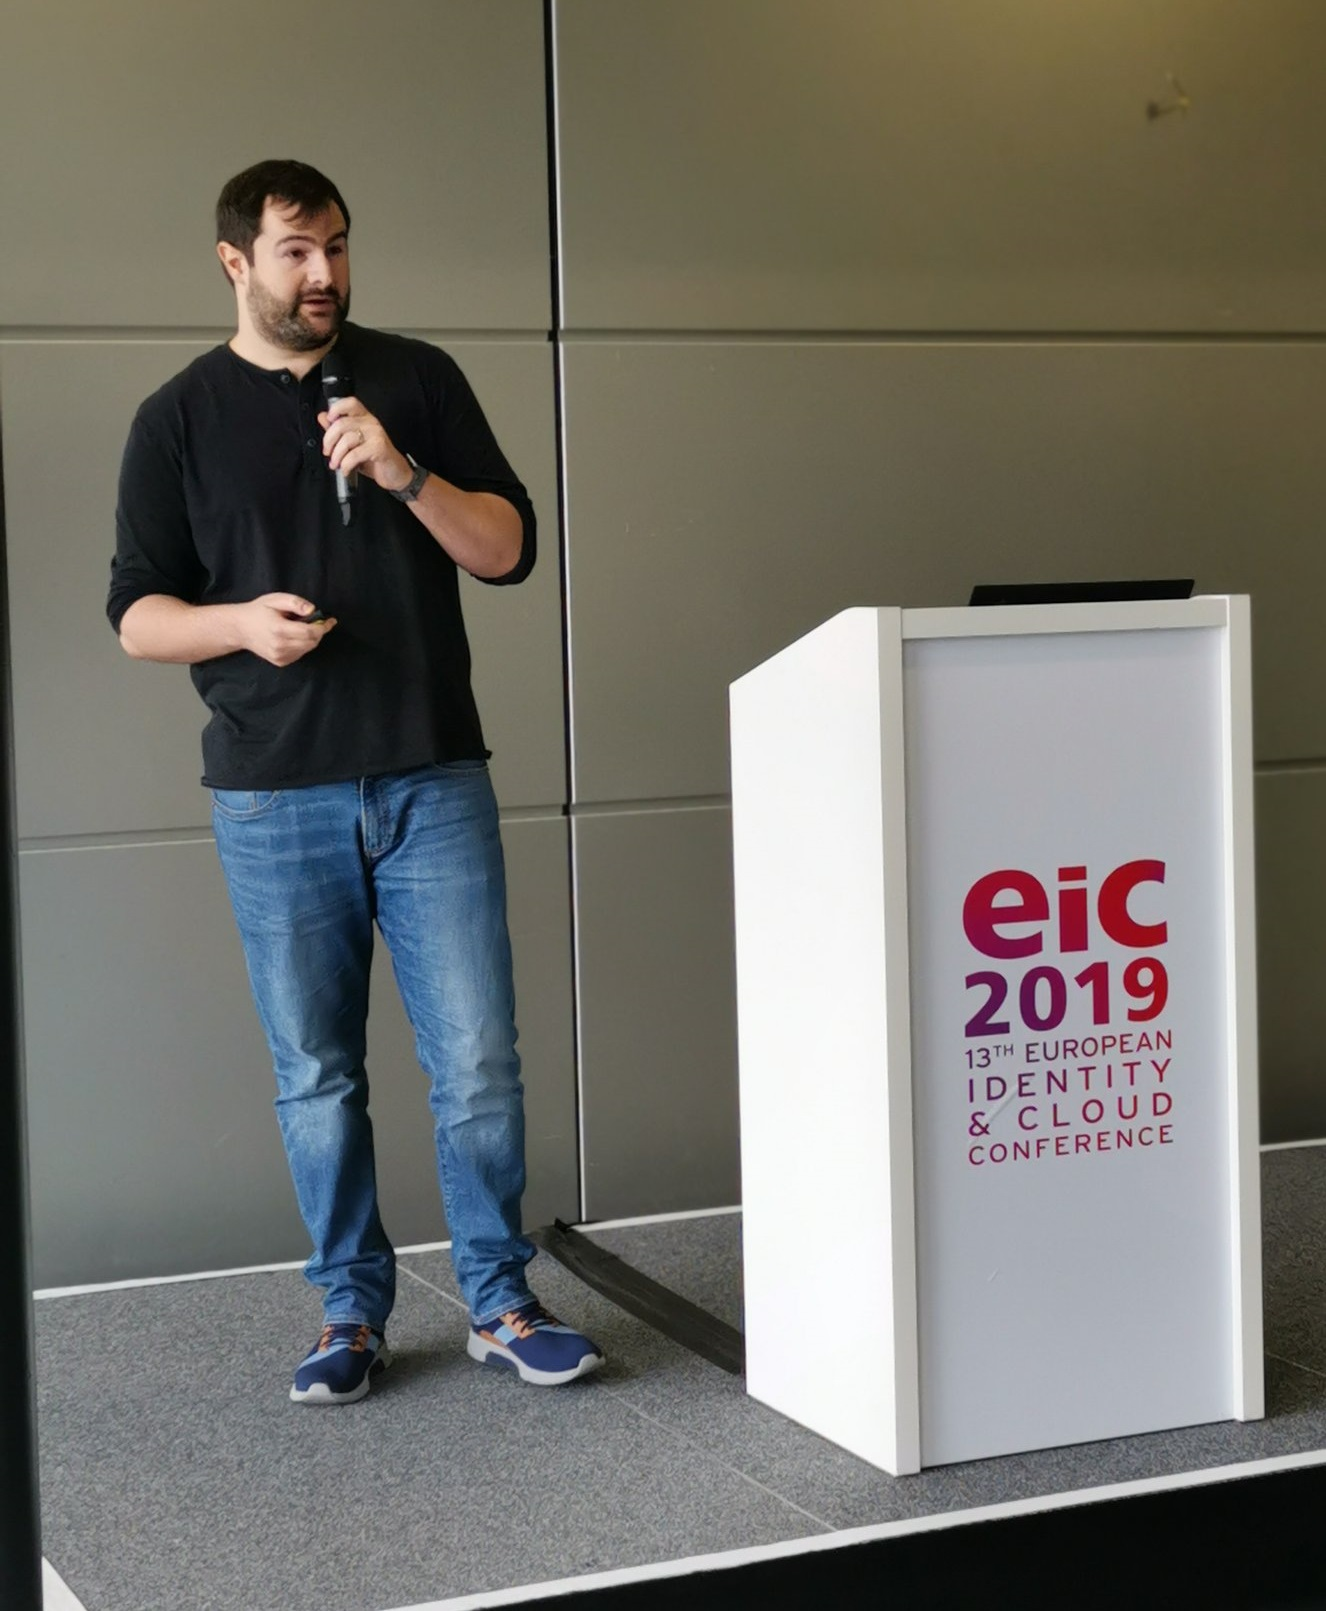 Scott Brady at the EIC conference in 2019